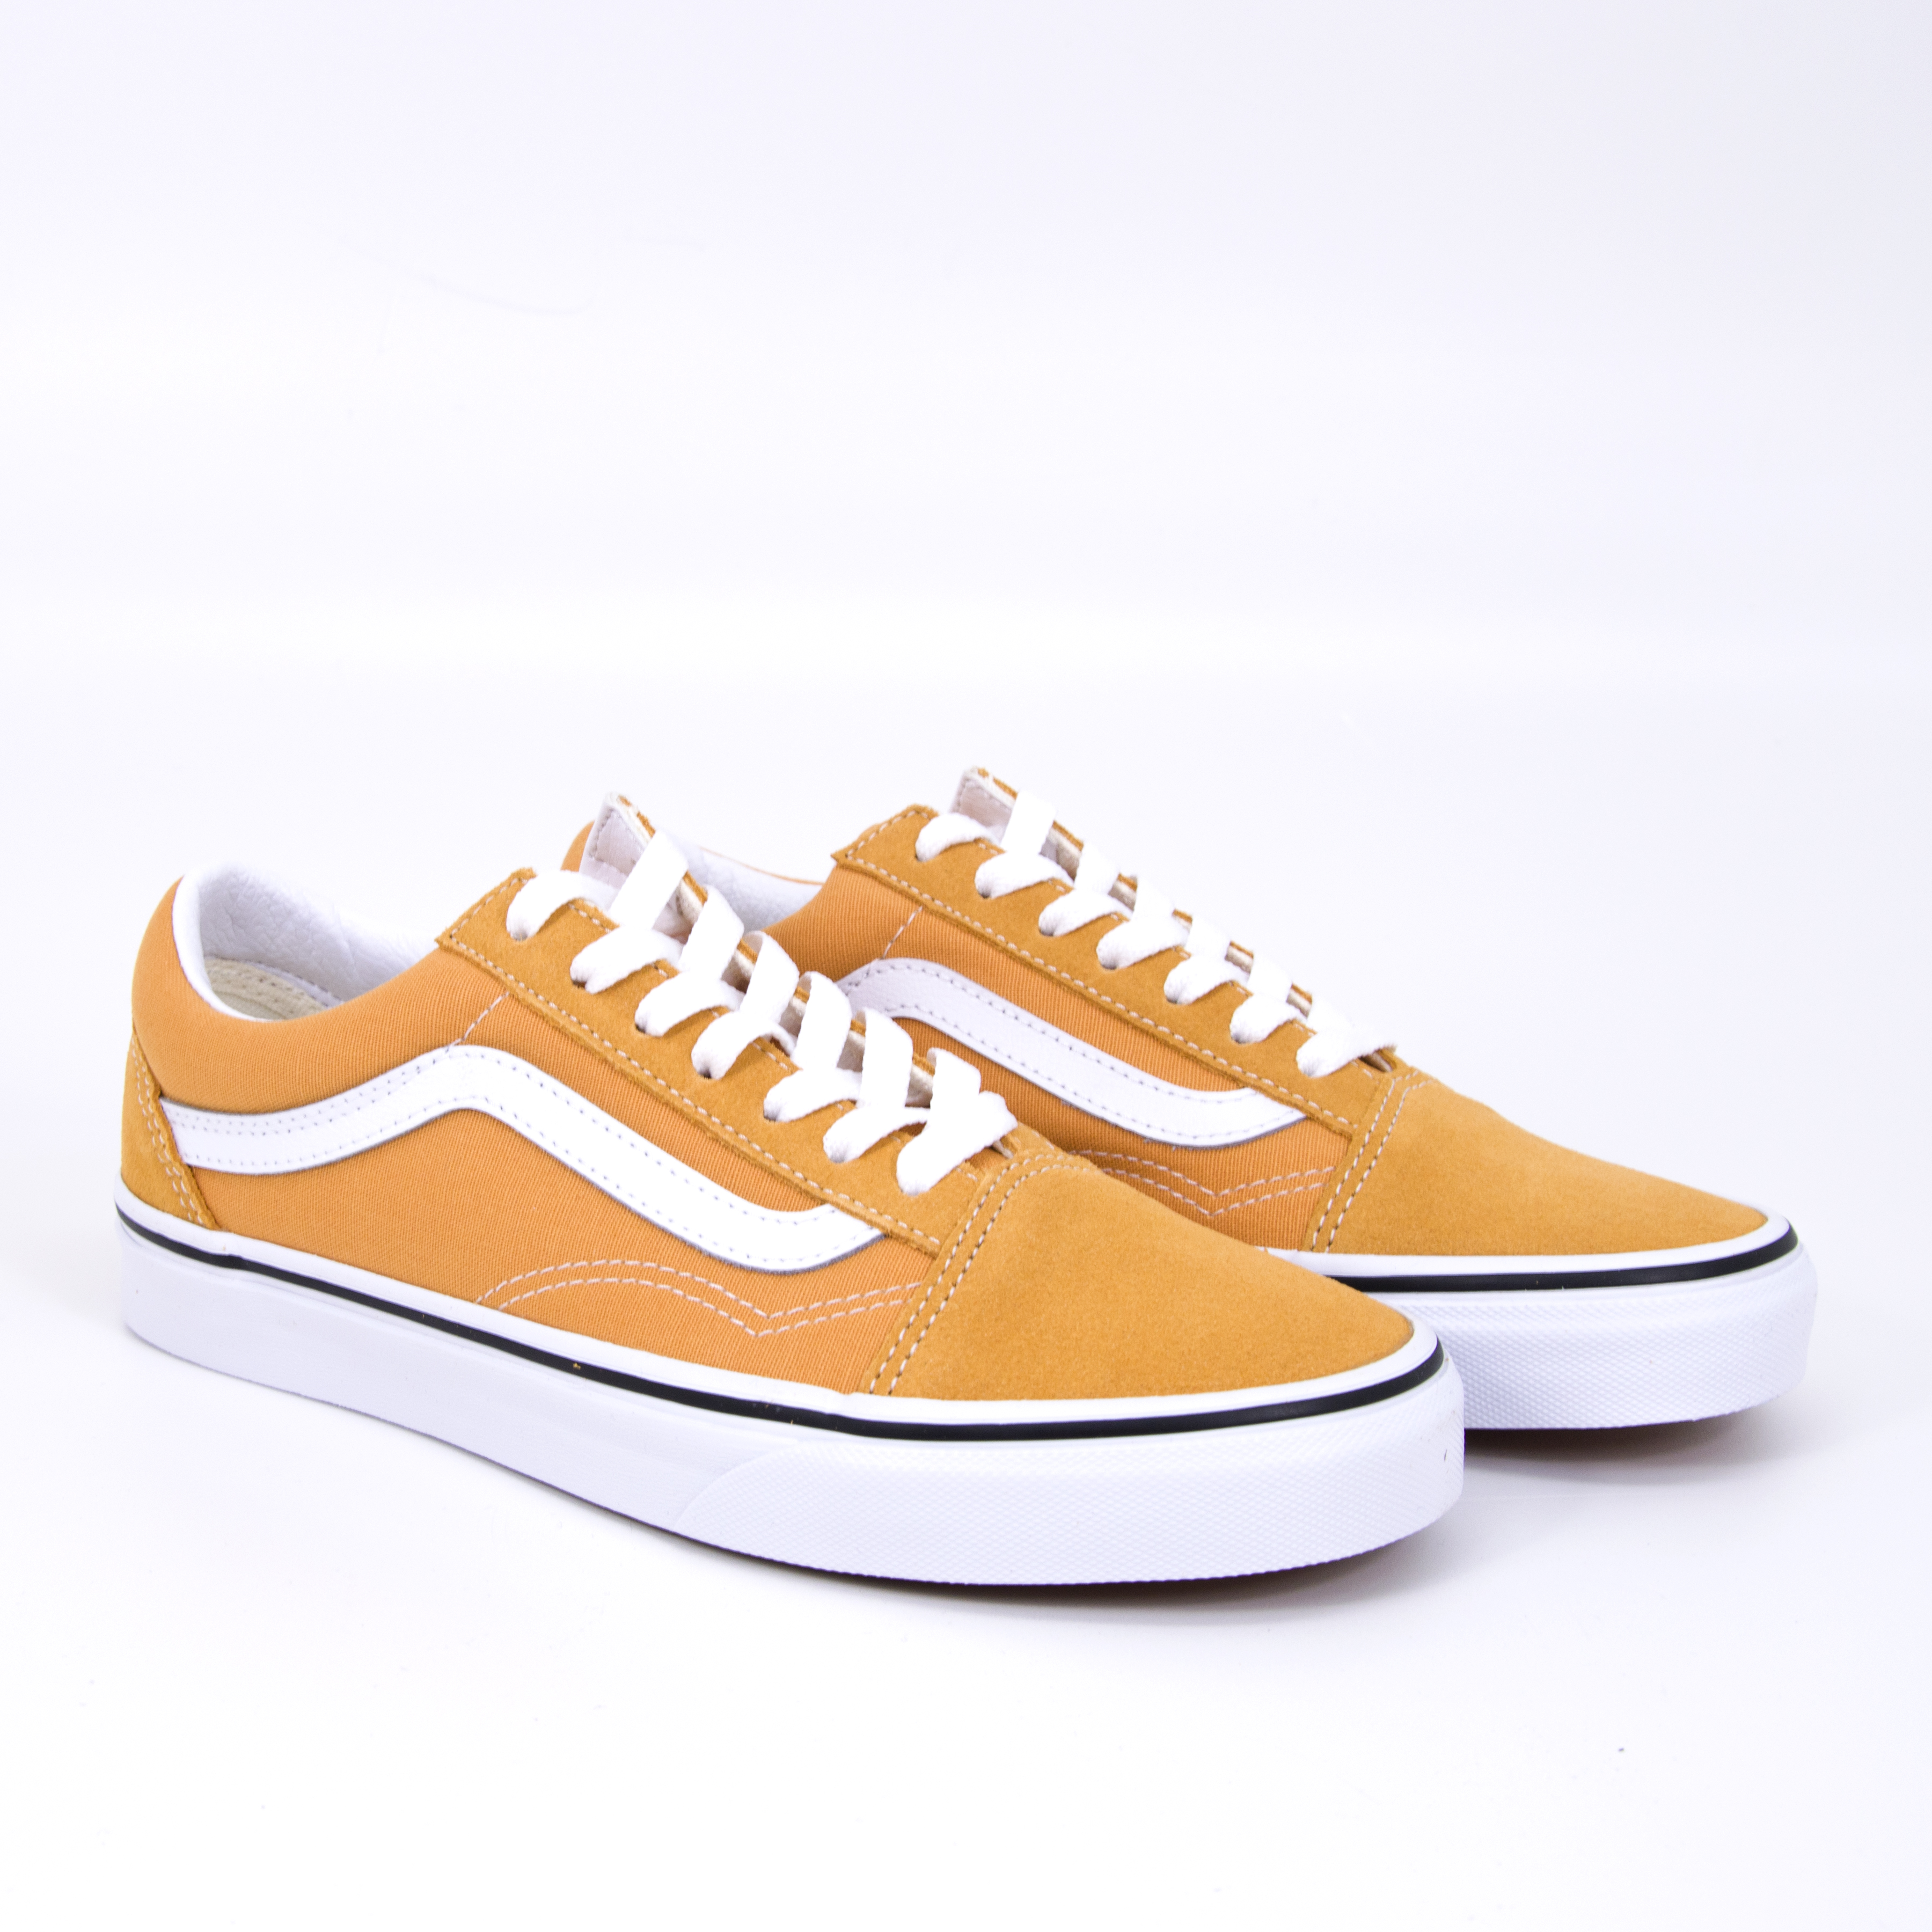 Vans - OLD SKOOL - Golden Nugget/True White